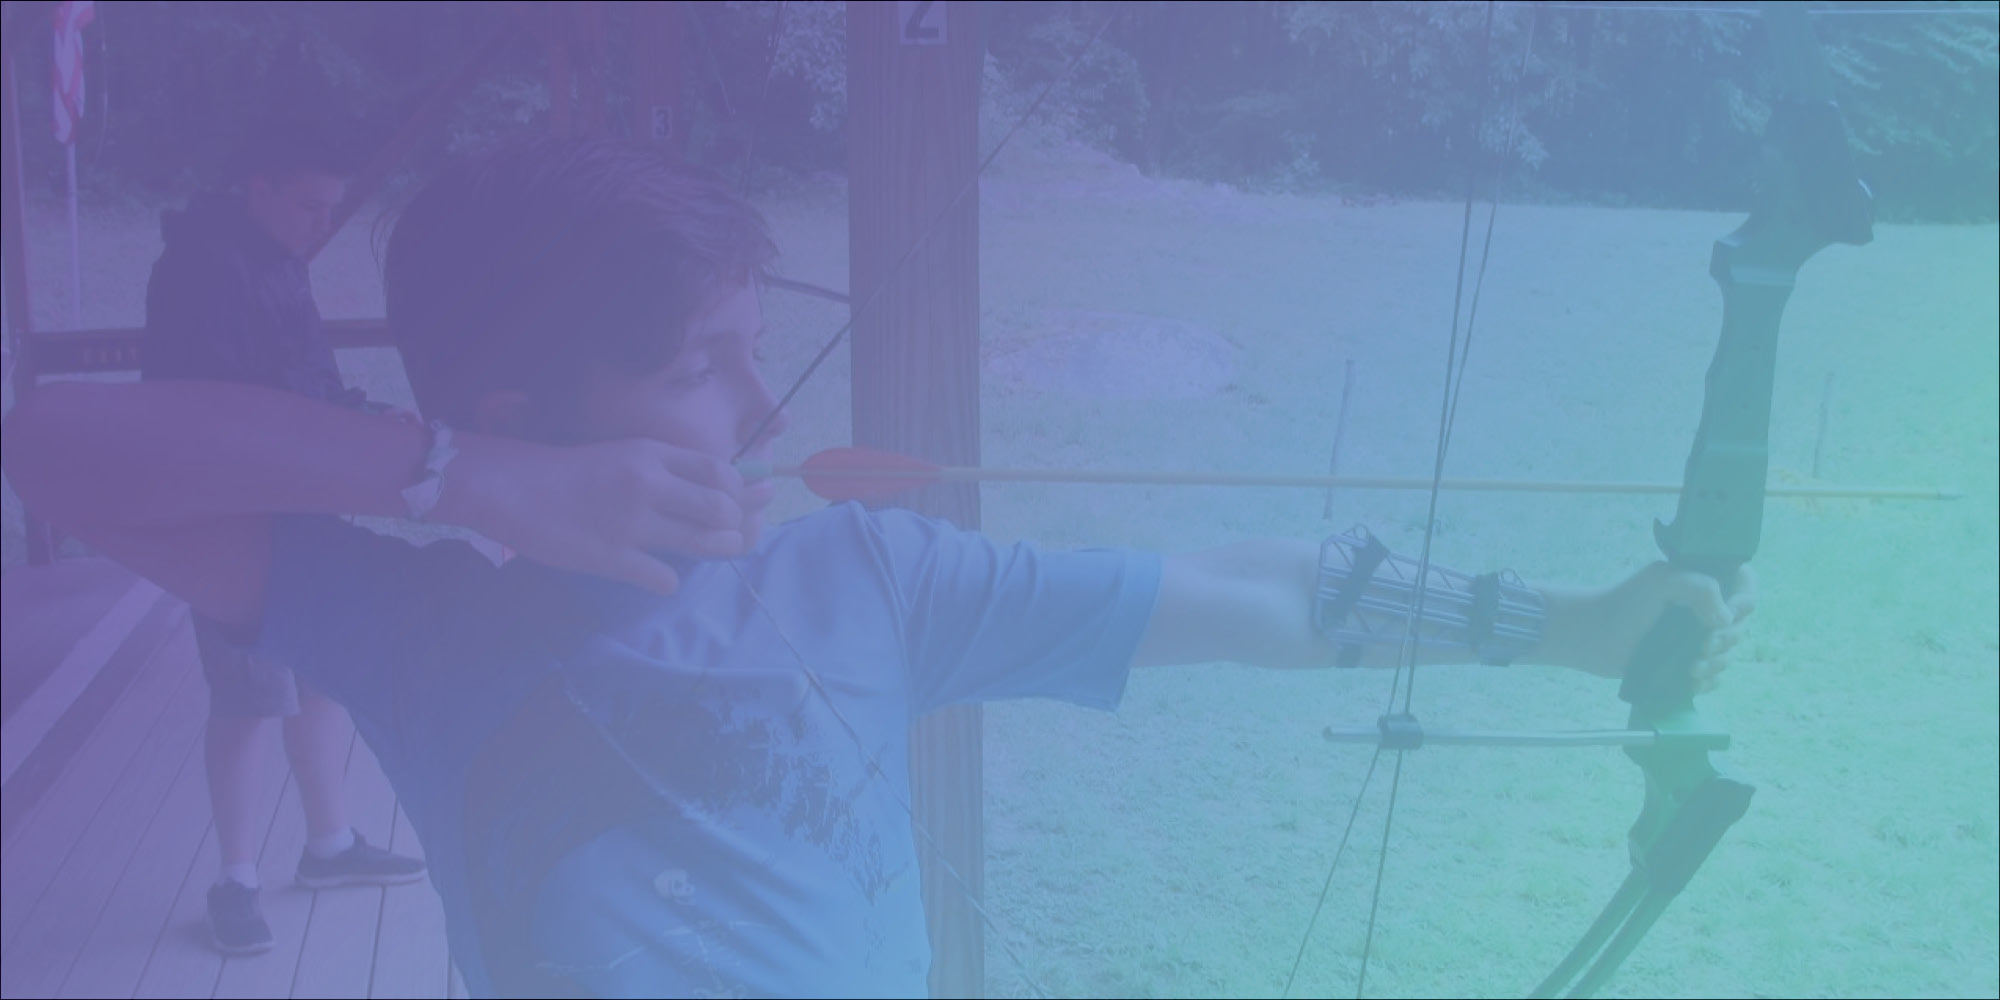 banner image: boy with bow and arrow practicing archery